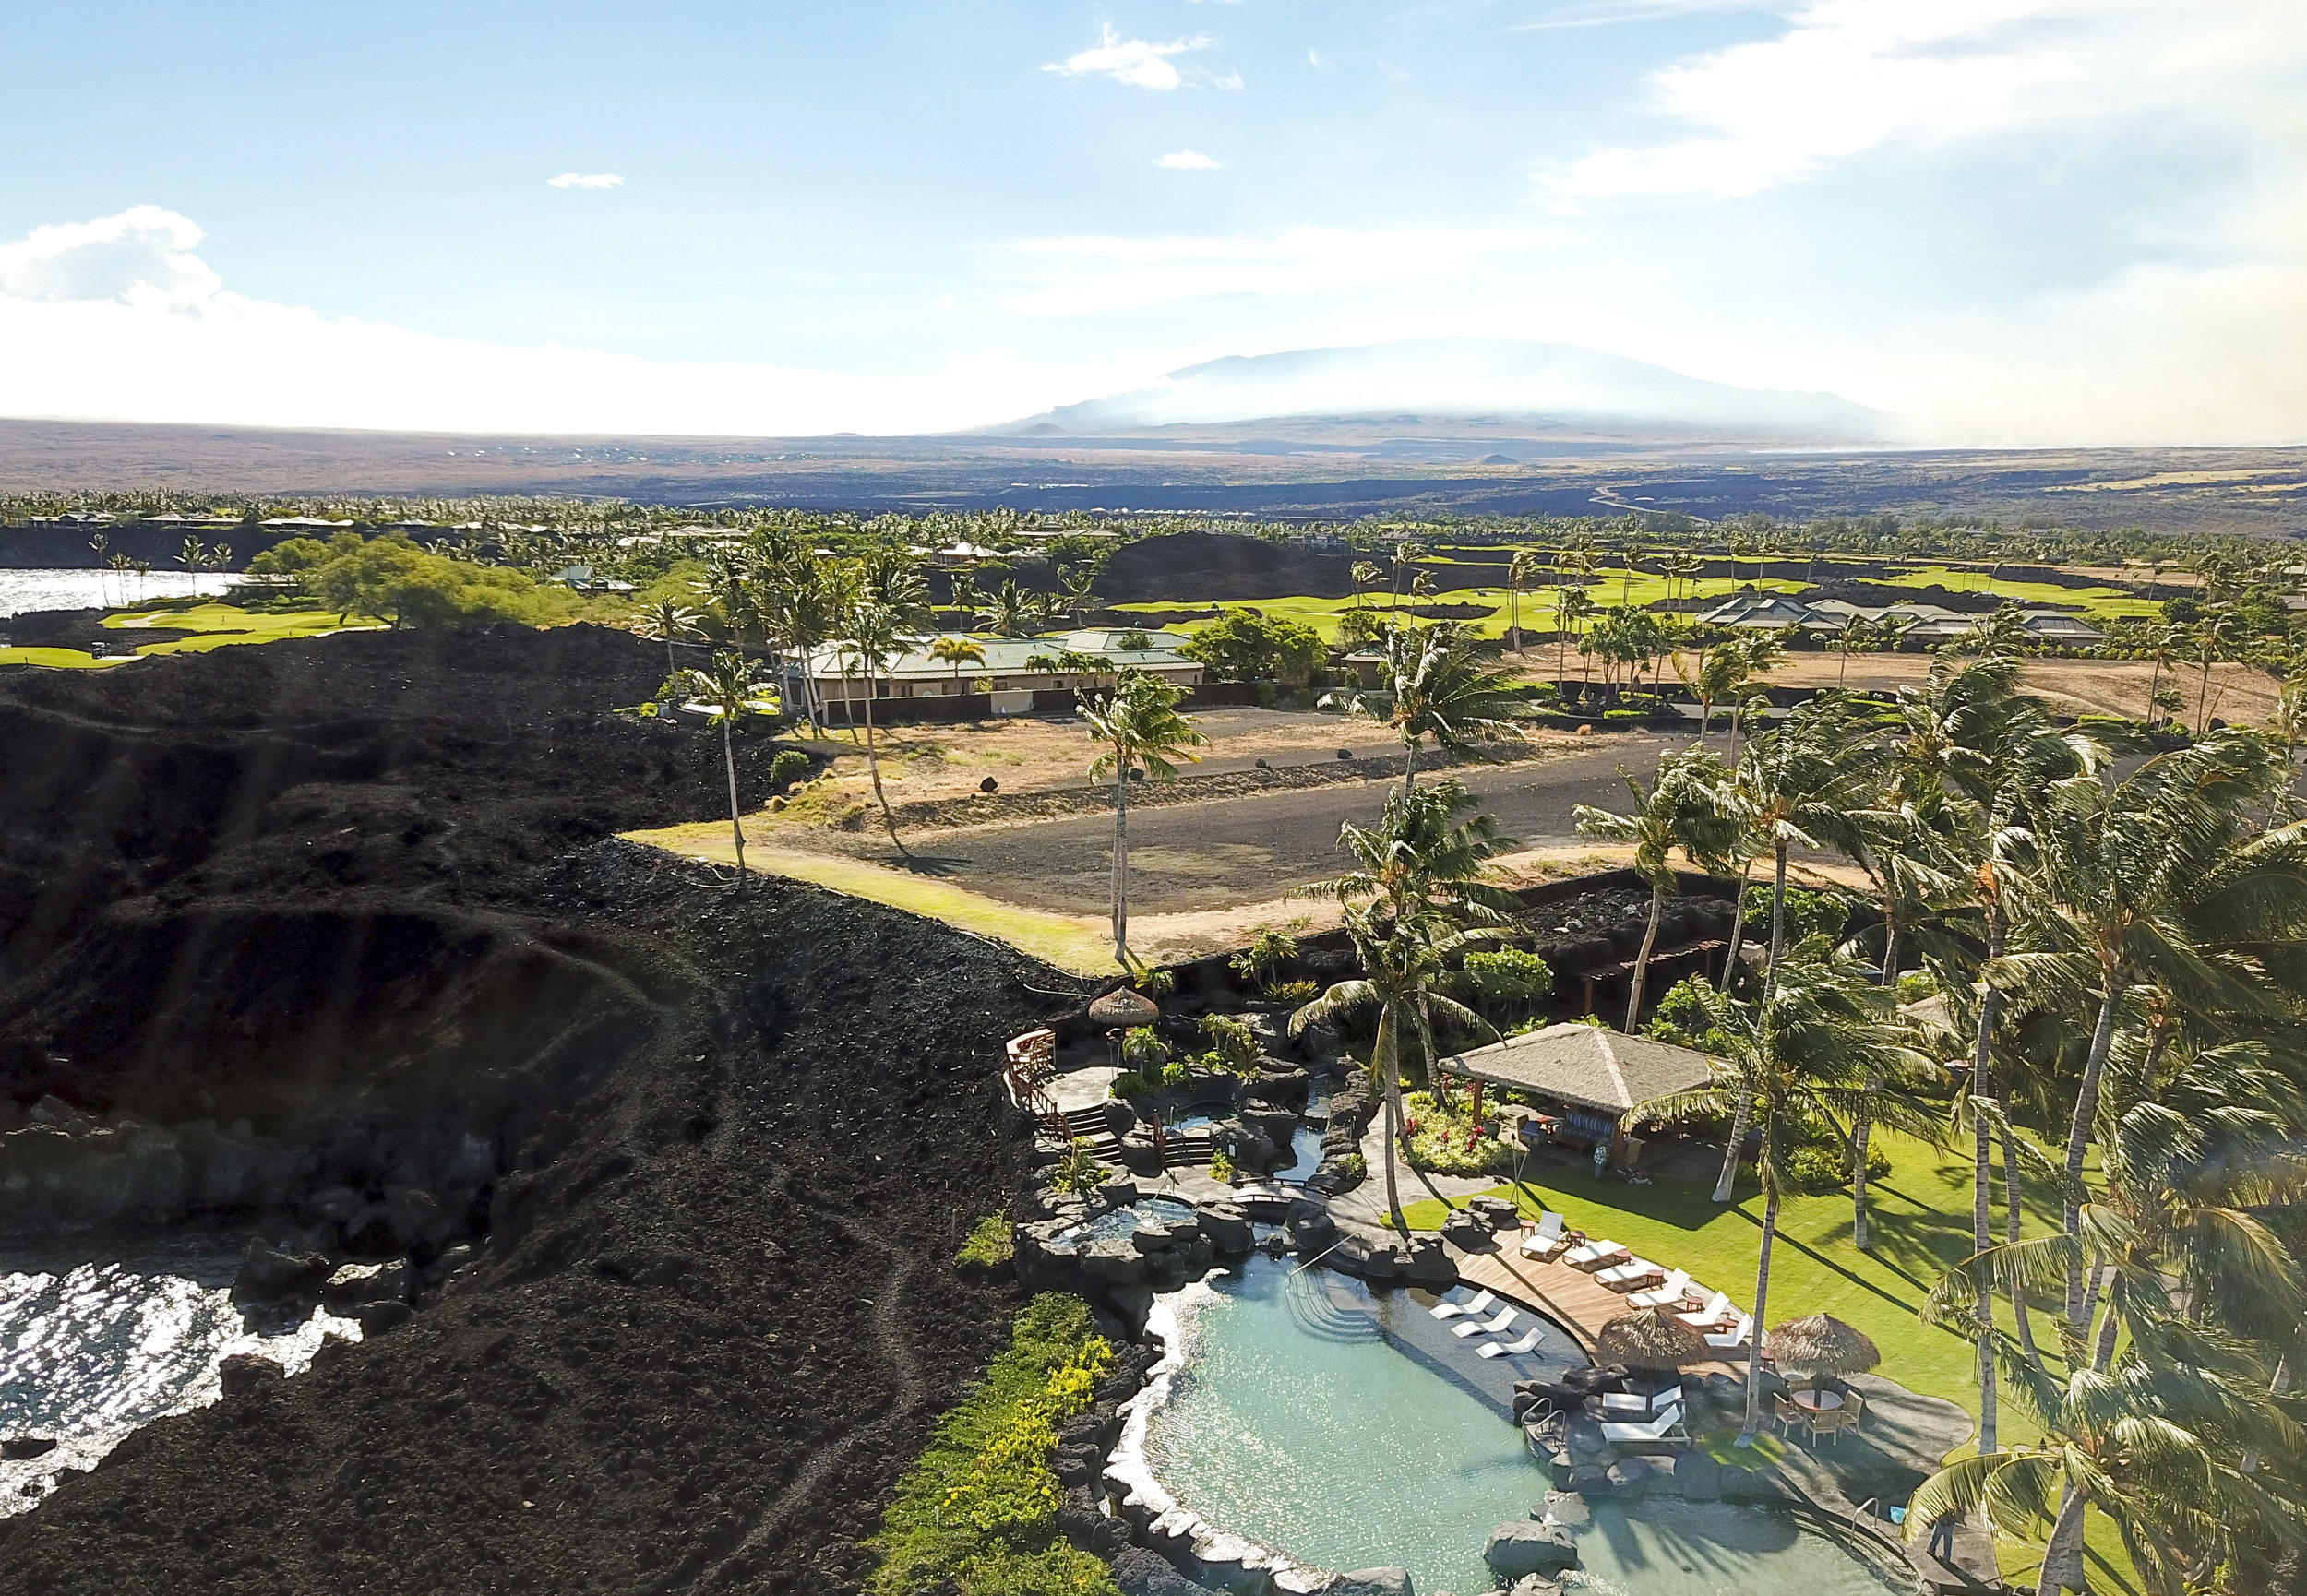 Oceanfront Lot 2 at Ke Kailani is perched above the luxury residential resort's private grotto with infinity pool, two spas and entertainment pavilions. Ke Kailani Lot 2 | Mauna Lani Resort, Kohala Coast | $4.95 million | 1.33 acres |  MLS#620199